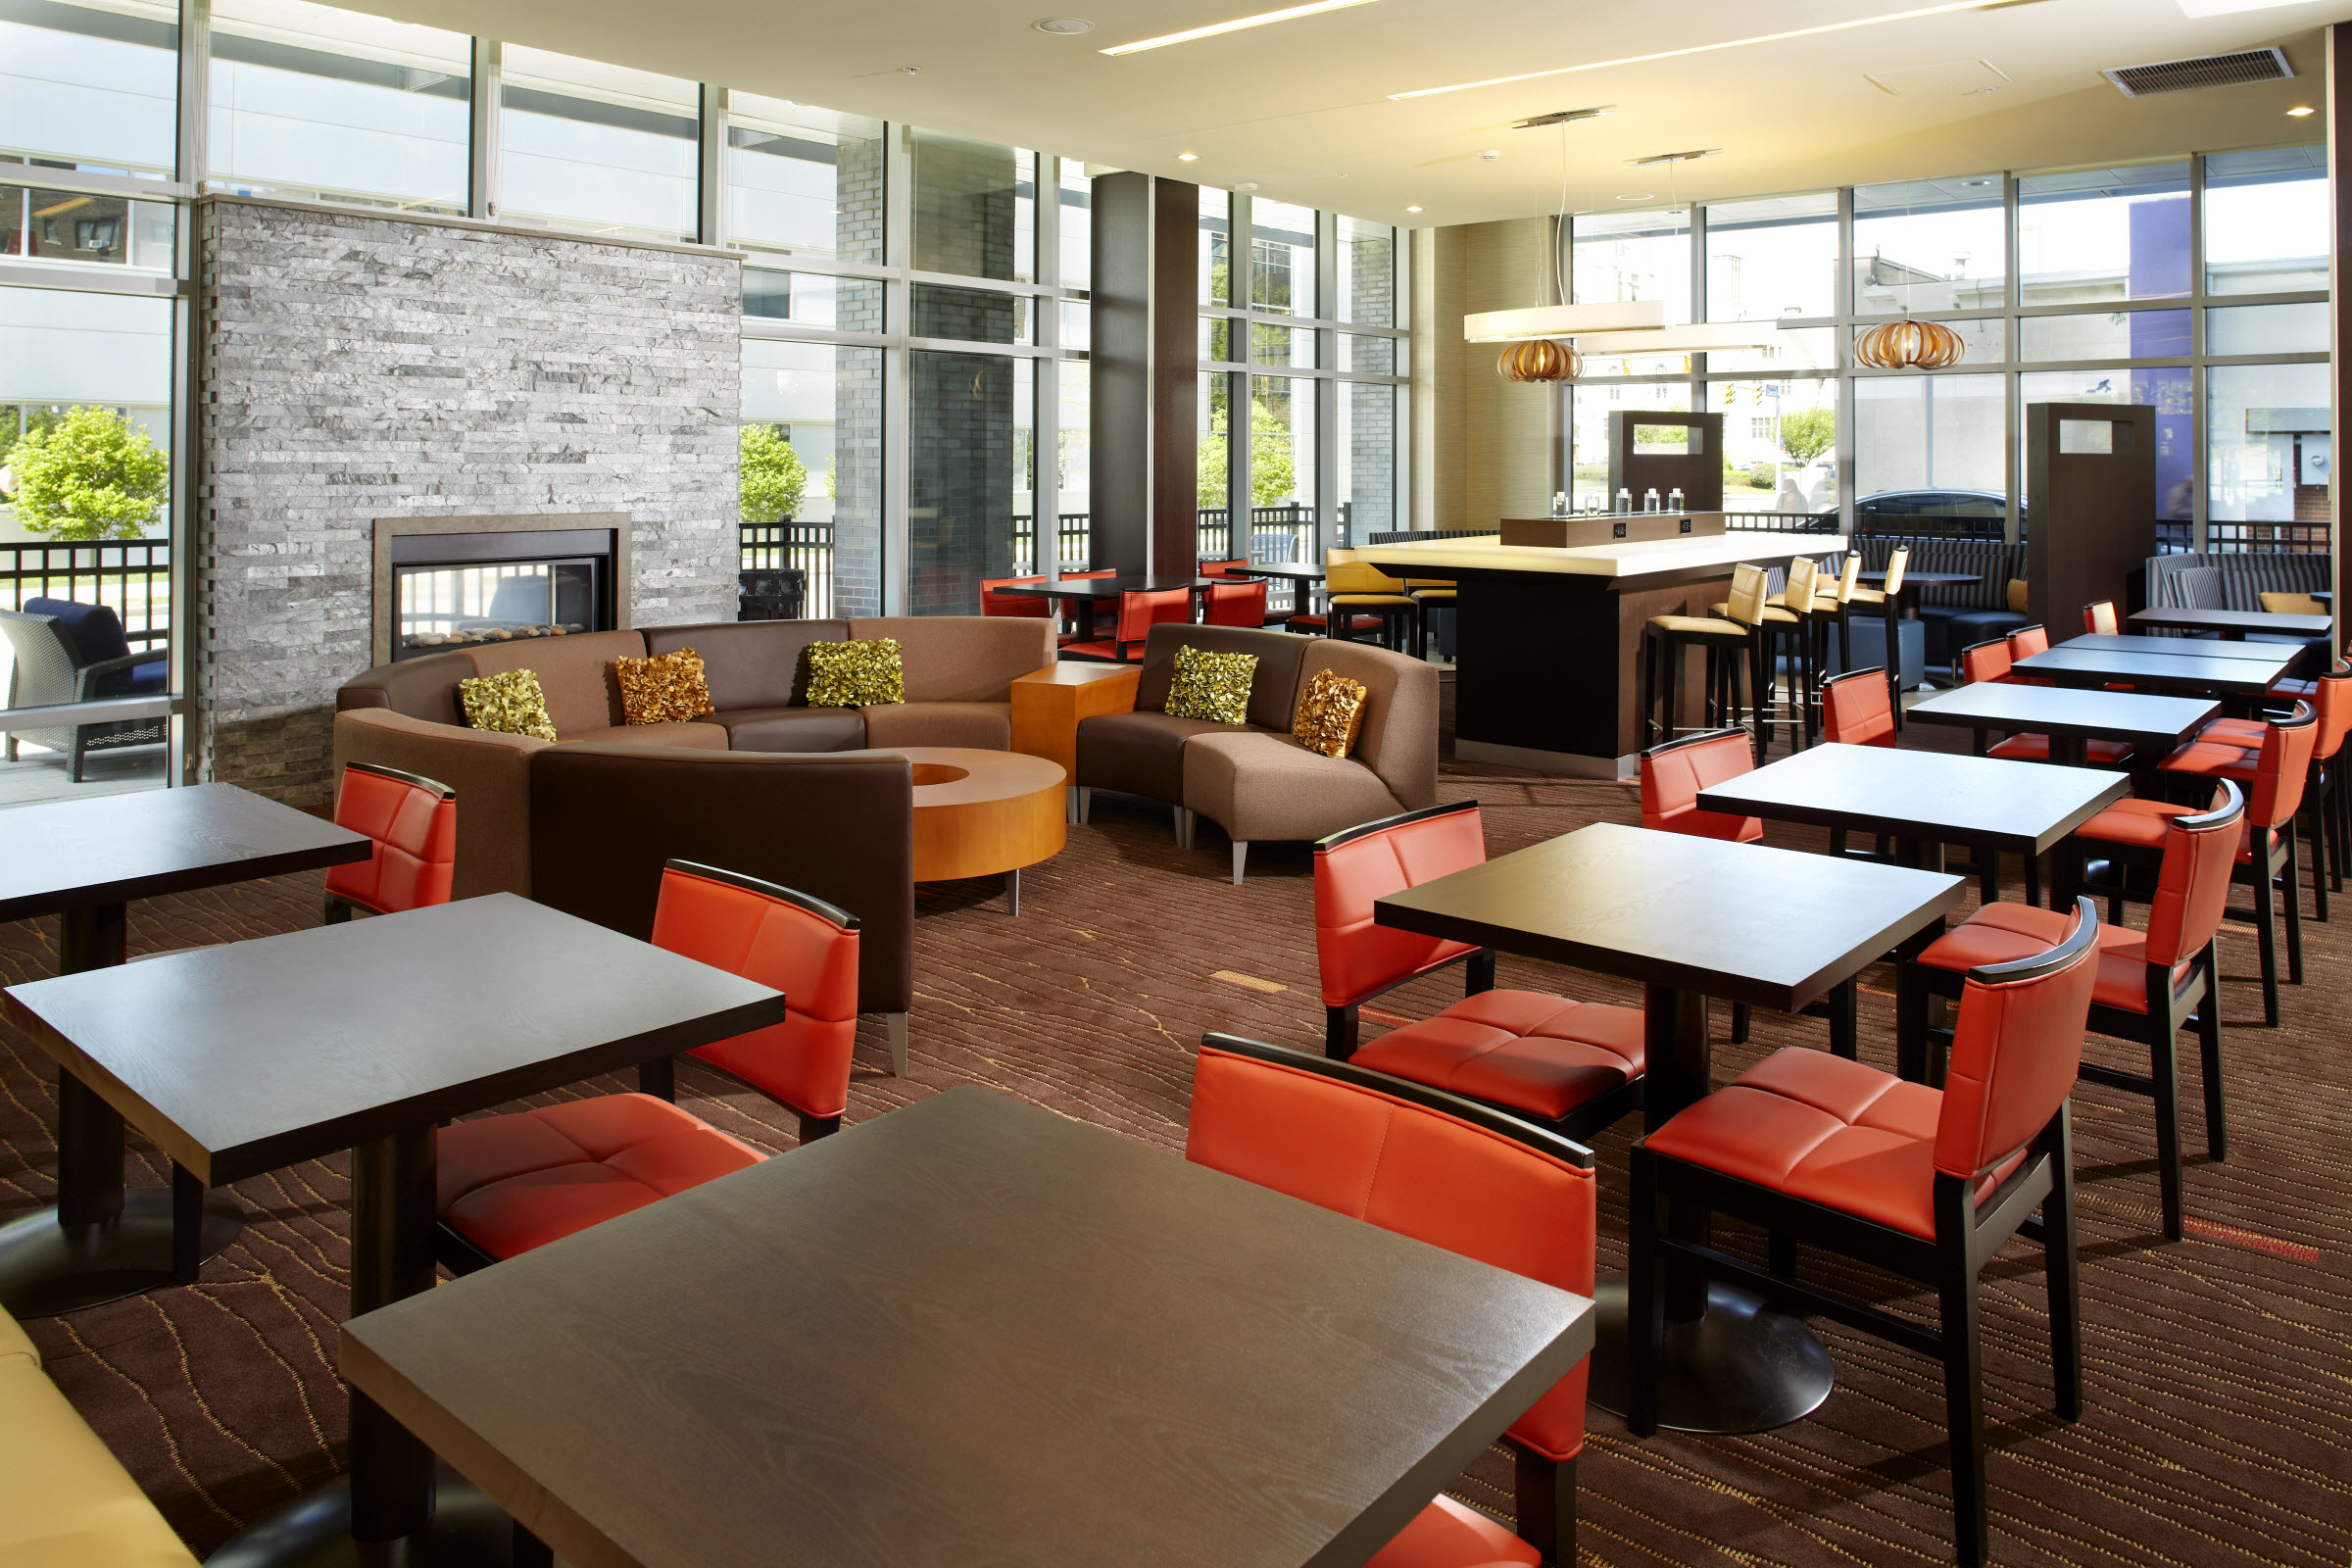 Courtyard by Marriott Cleveland University Circle image 3